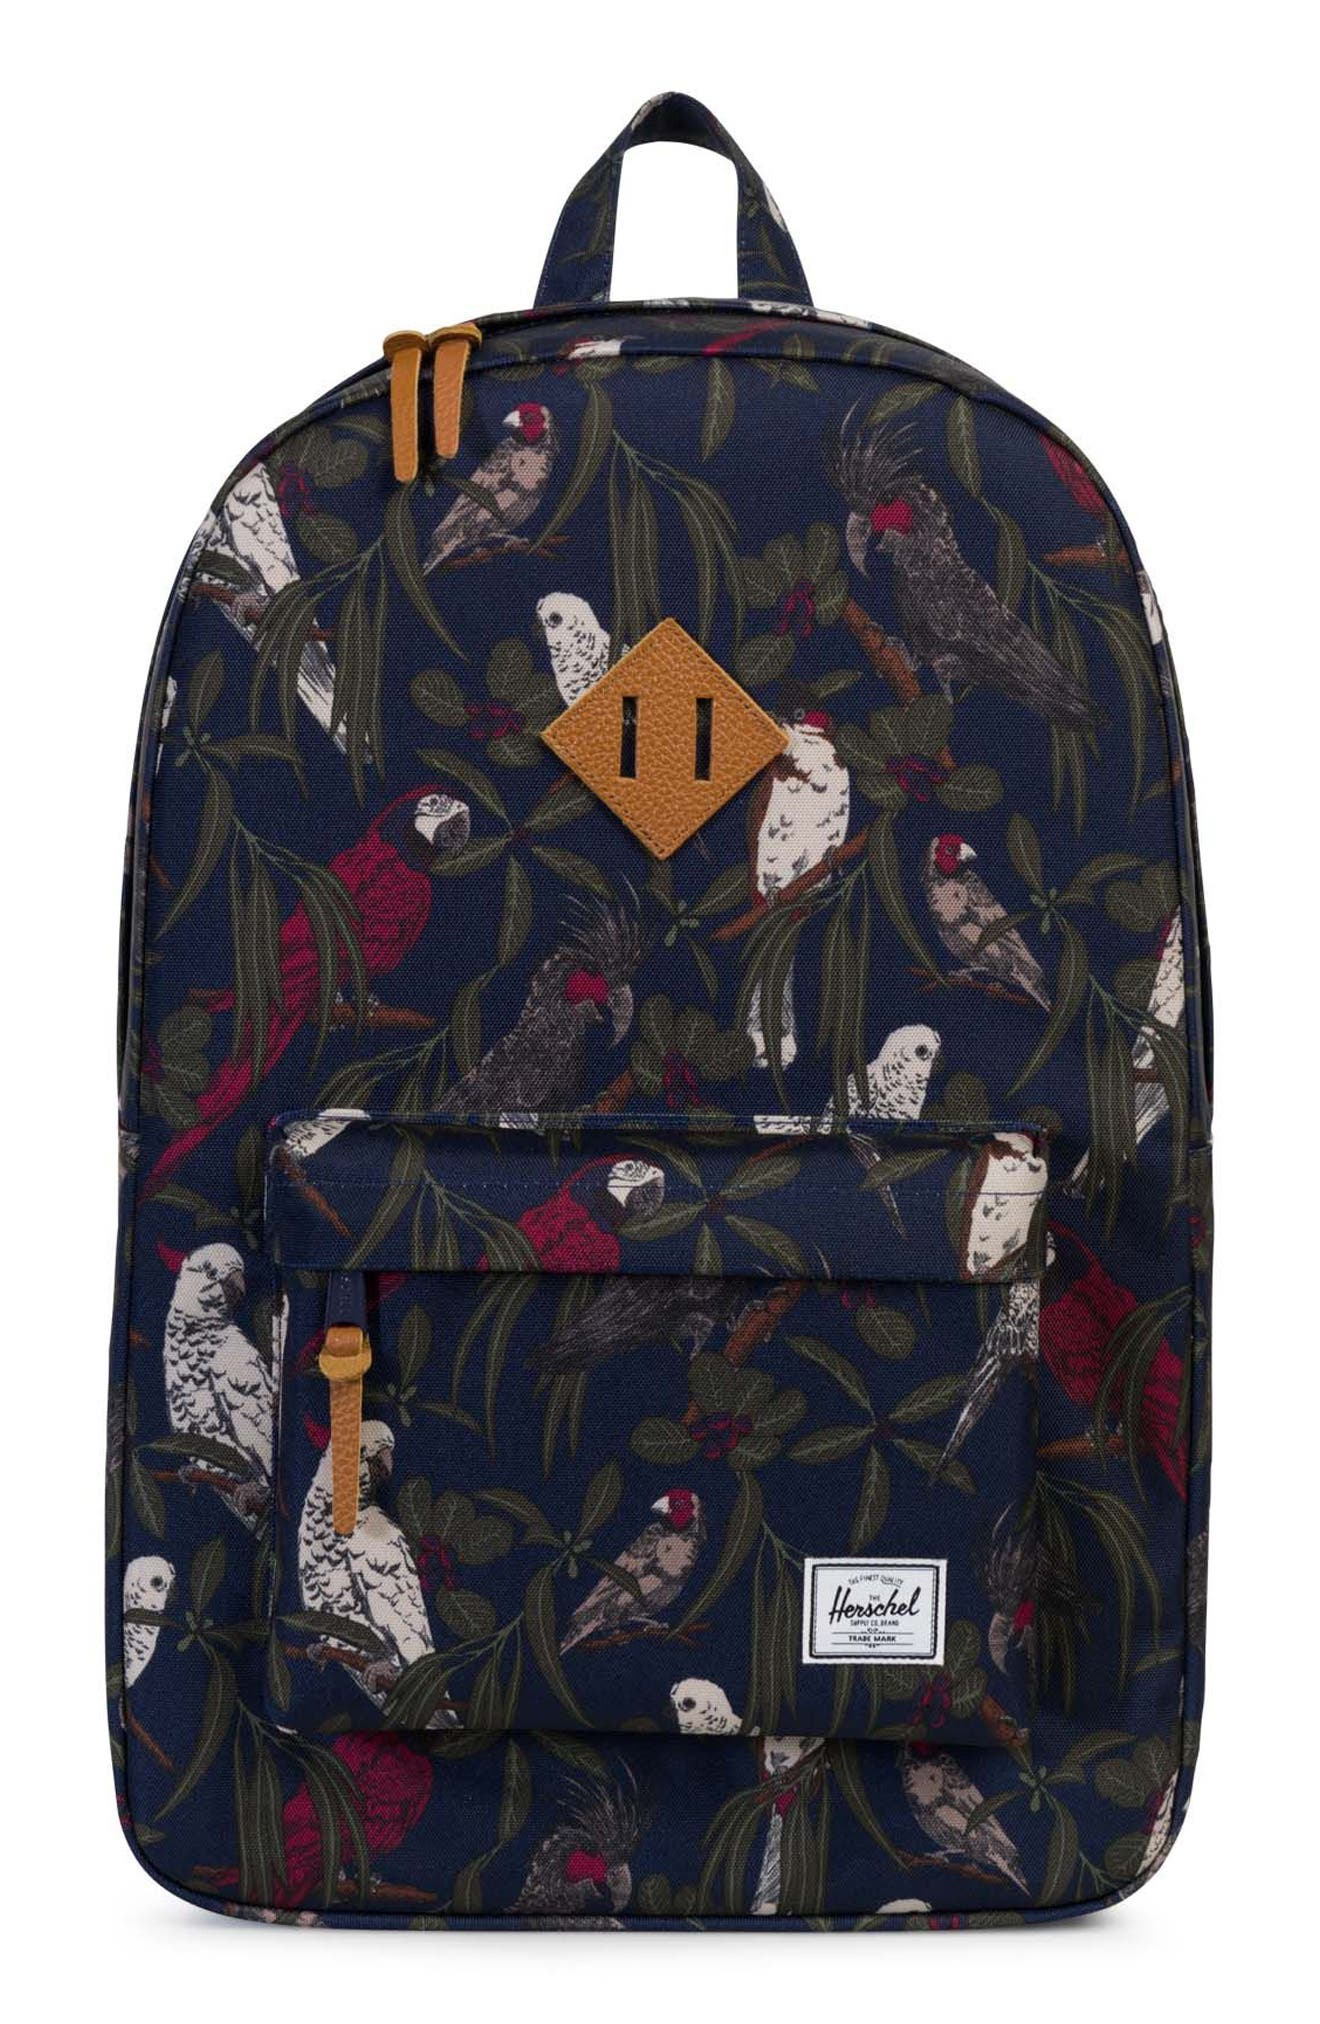 Heritage Backpack,                             Main thumbnail 1, color,                             Peacoat Parlour